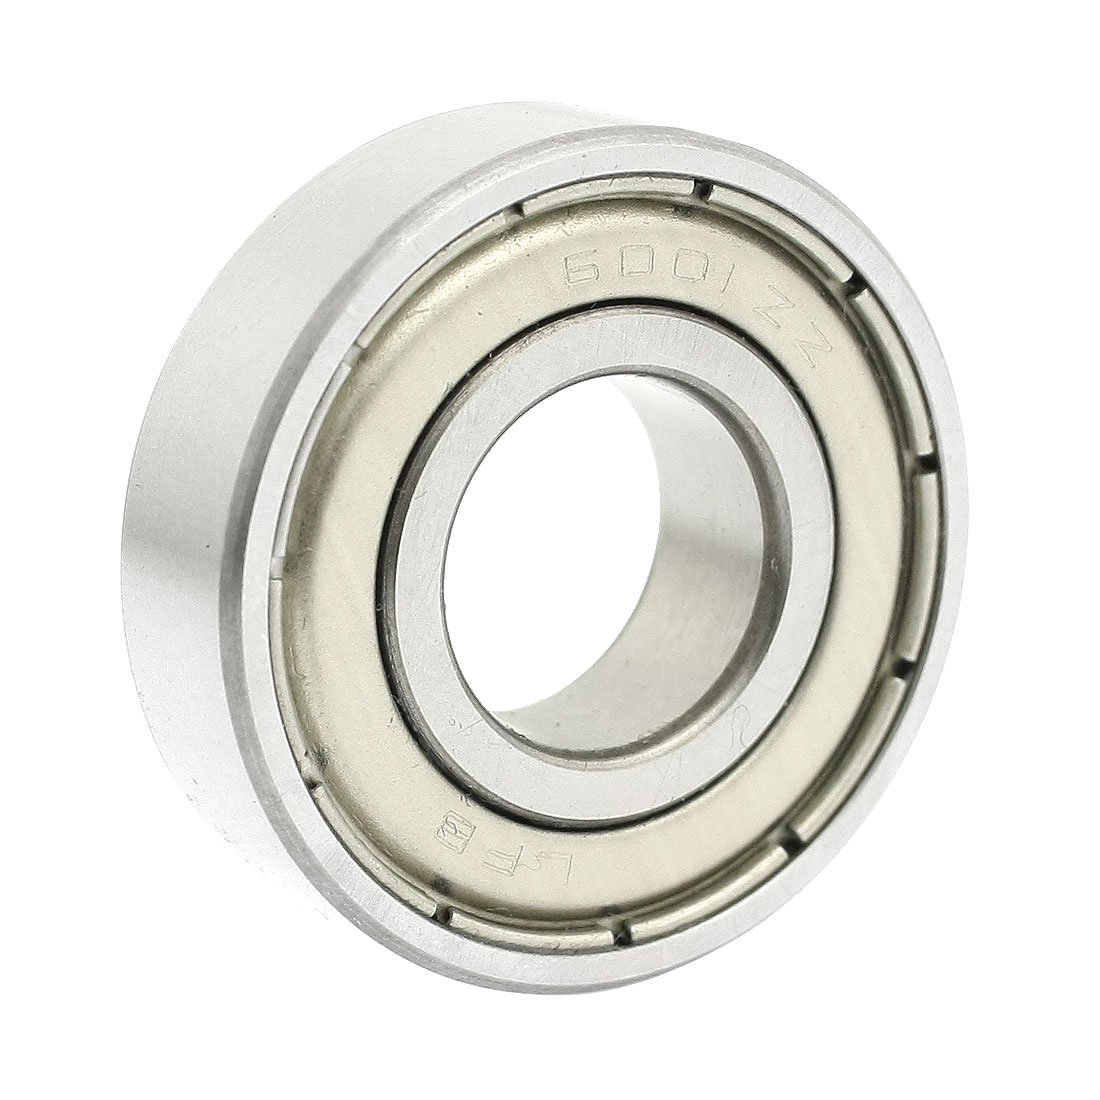 6001ZZ Double Shielded Deep Groove Ball Bearings 28mm x 12mm x 8mm gcr15 6036 180x280x46mm high precision deep groove ball bearings abec 1 p0 1 pcs